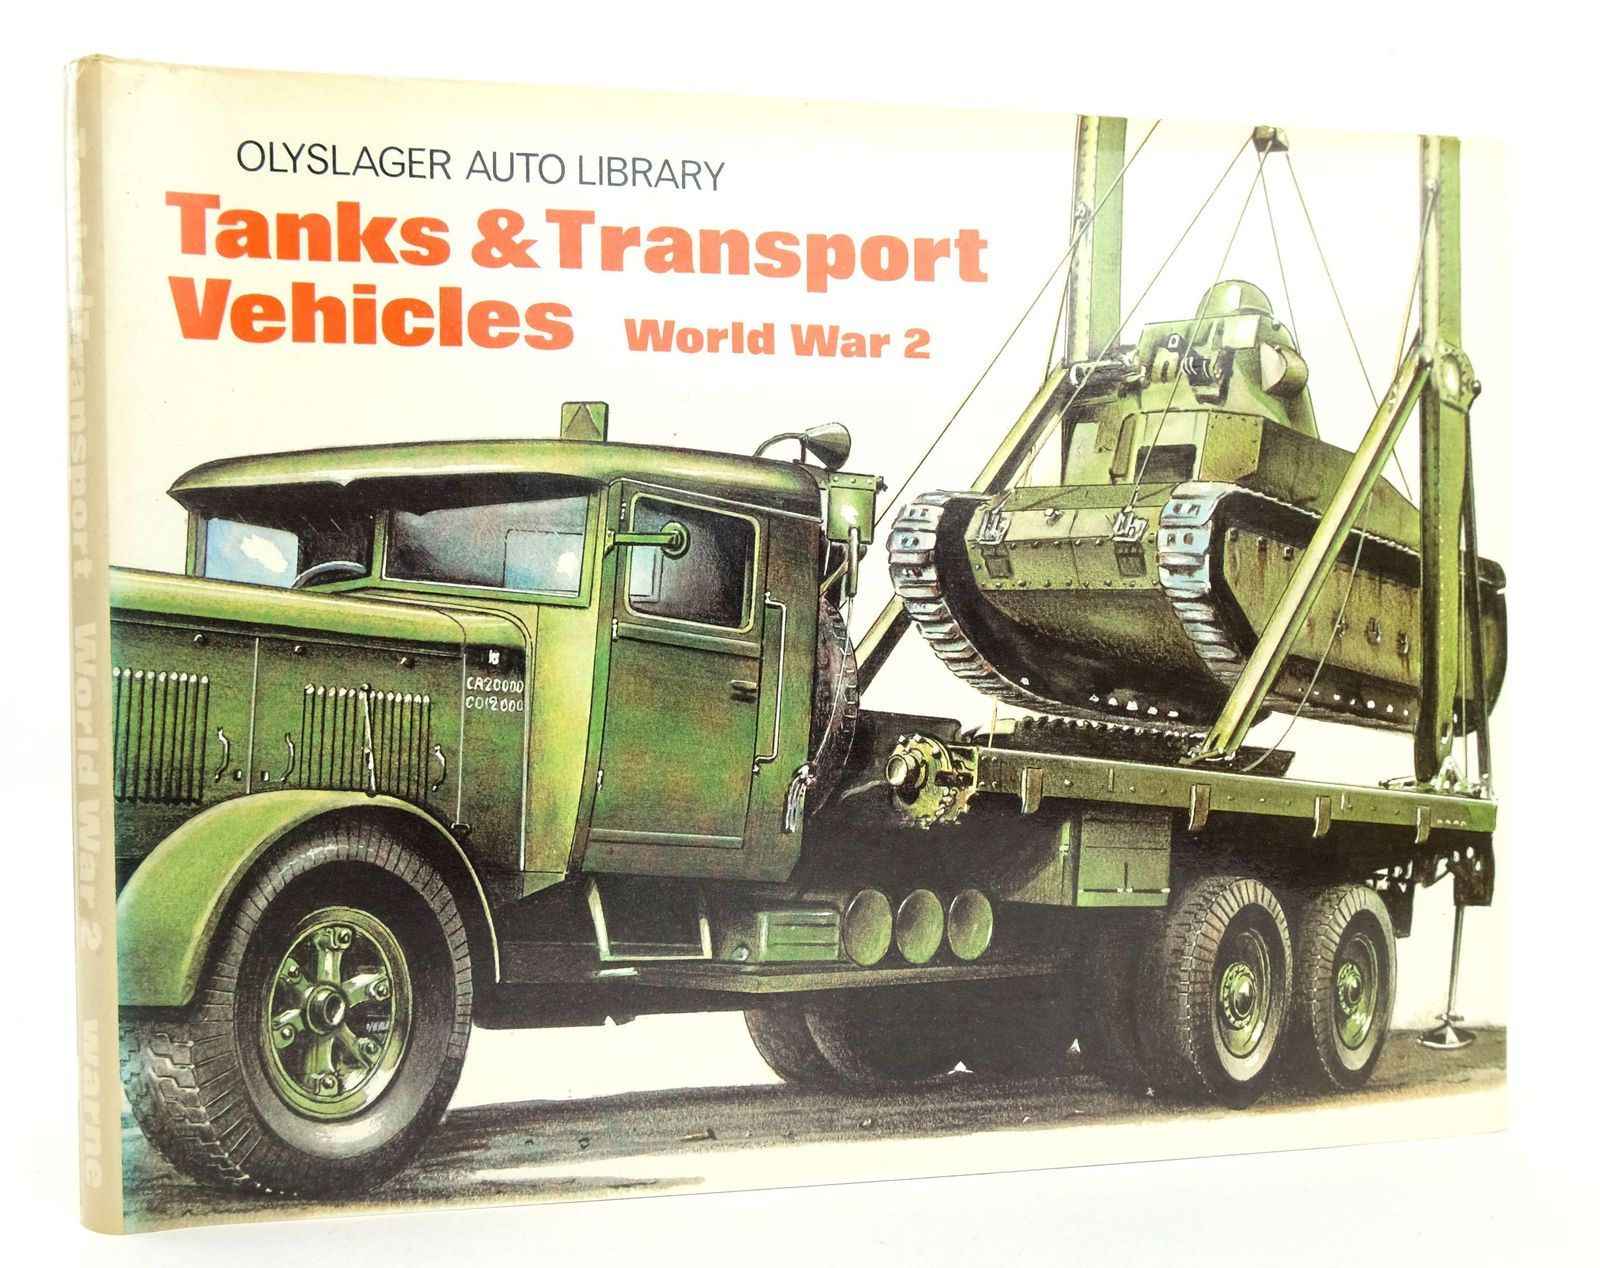 Photo of TANKS & TRANSPORT VEHICLES WORLD WAR 2 written by Vanderveen, Bart H. published by Frederick Warne & Co Ltd. (STOCK CODE: 1819248)  for sale by Stella & Rose's Books